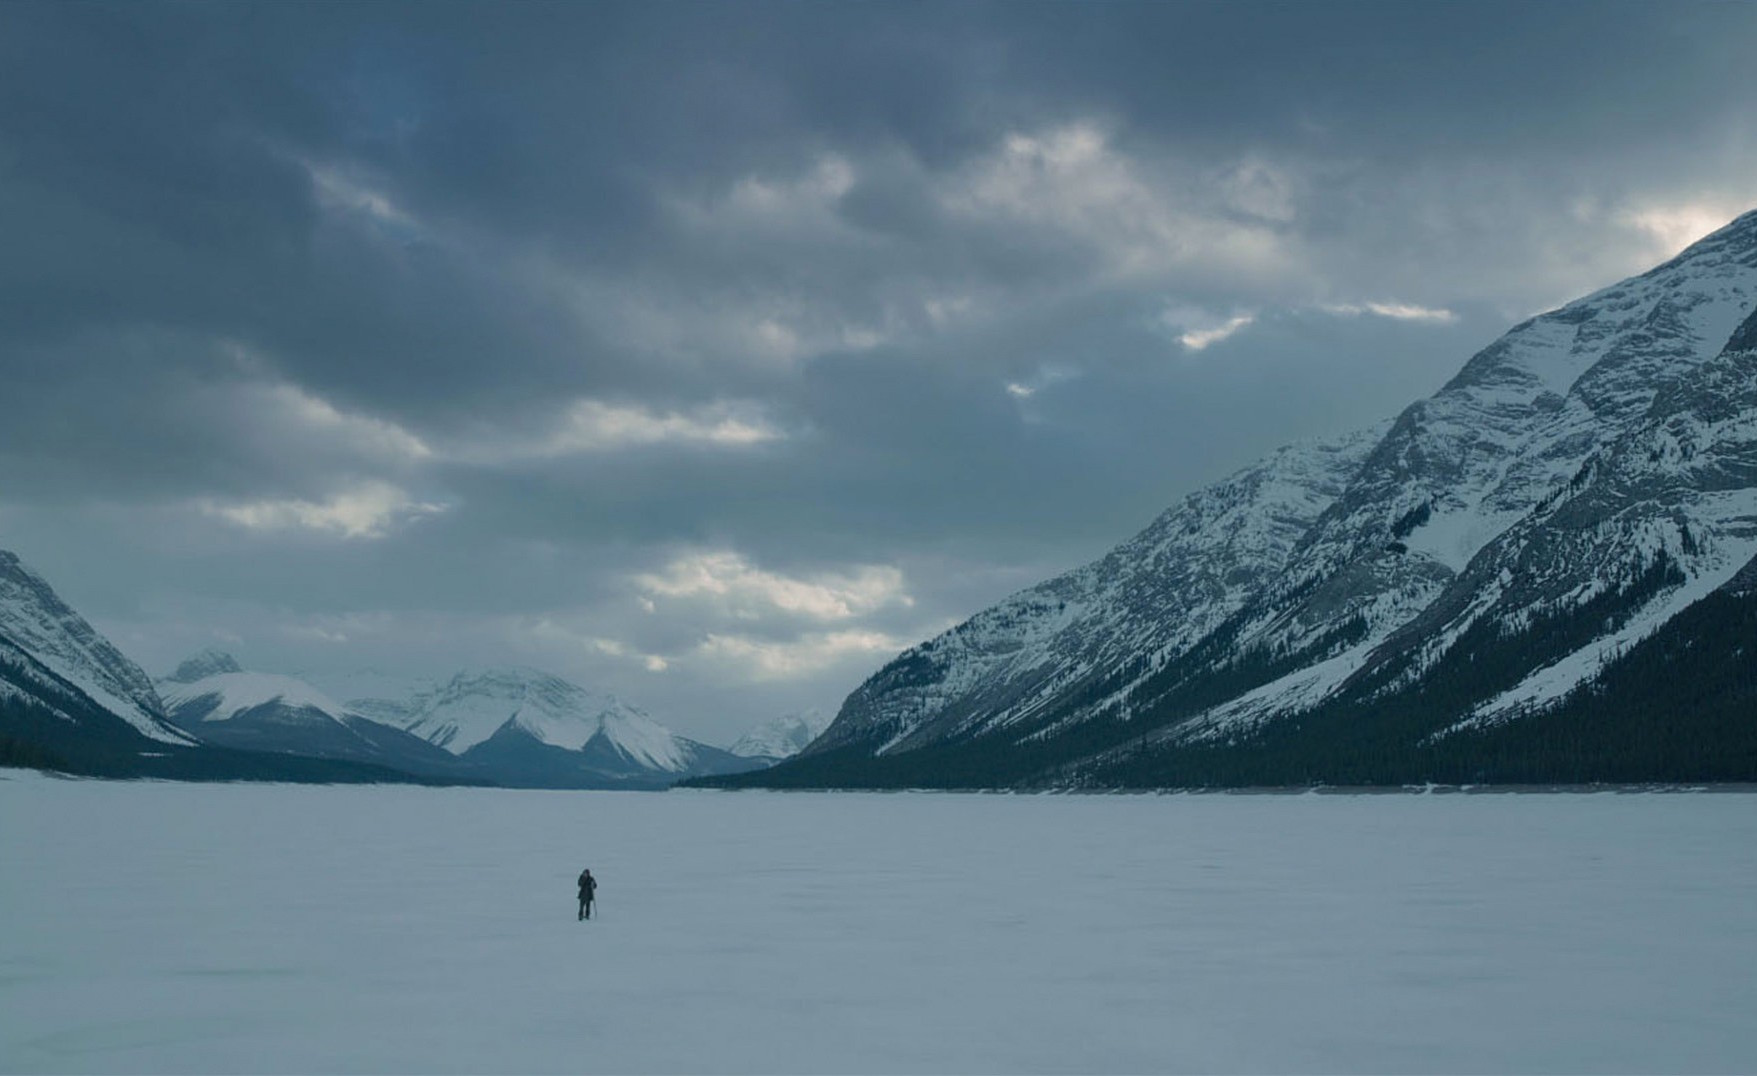 Alvin Manitopyes: Native women treated poorly in 'The Revenant'